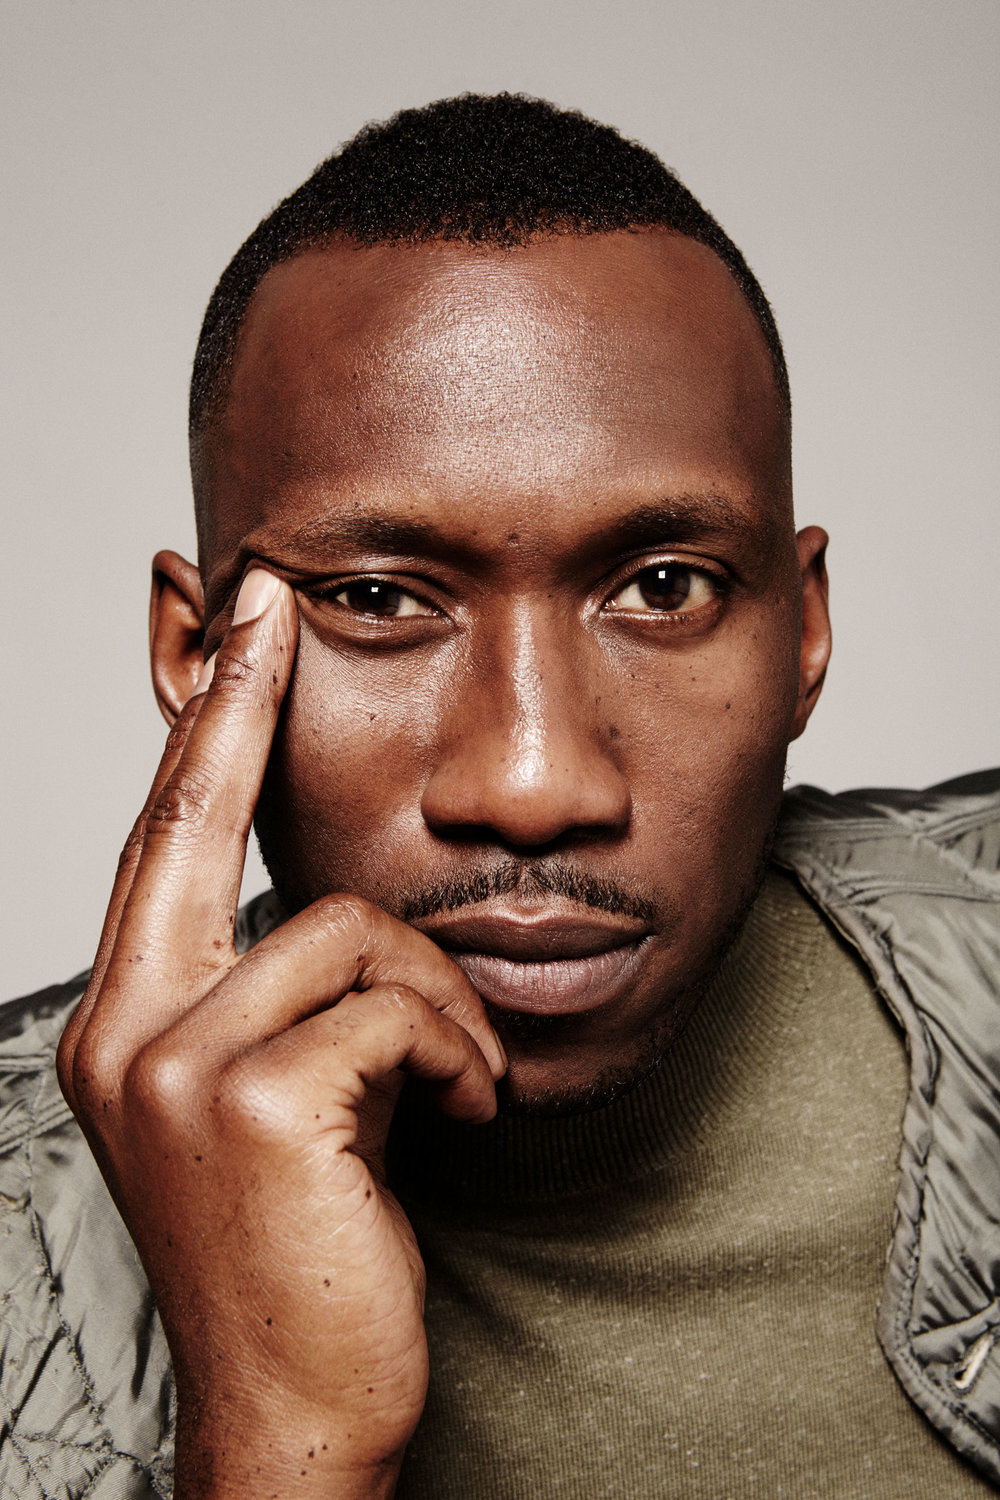 MAHERSHALA ALI FOR VULKAN MAG  PHOTOGRAPHER: JASON BARBAGELOTT